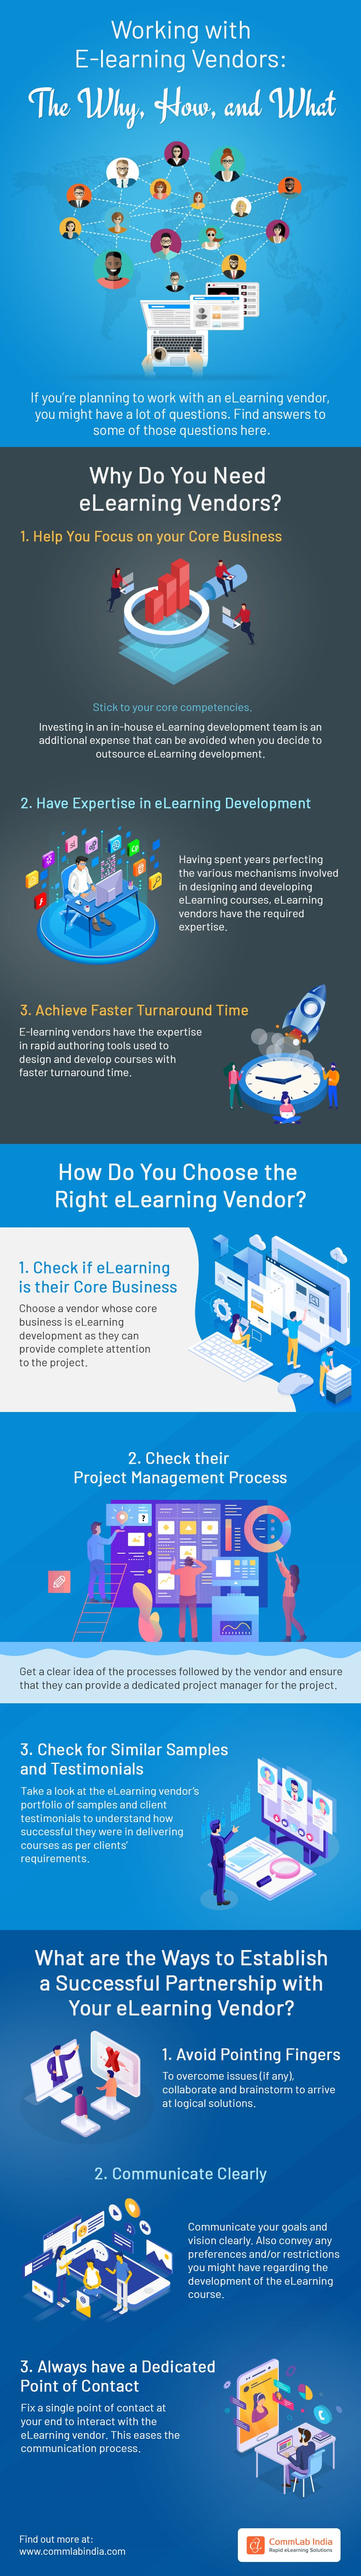 Working with E-learning Vendors: The Why, How, and What [Infographic]